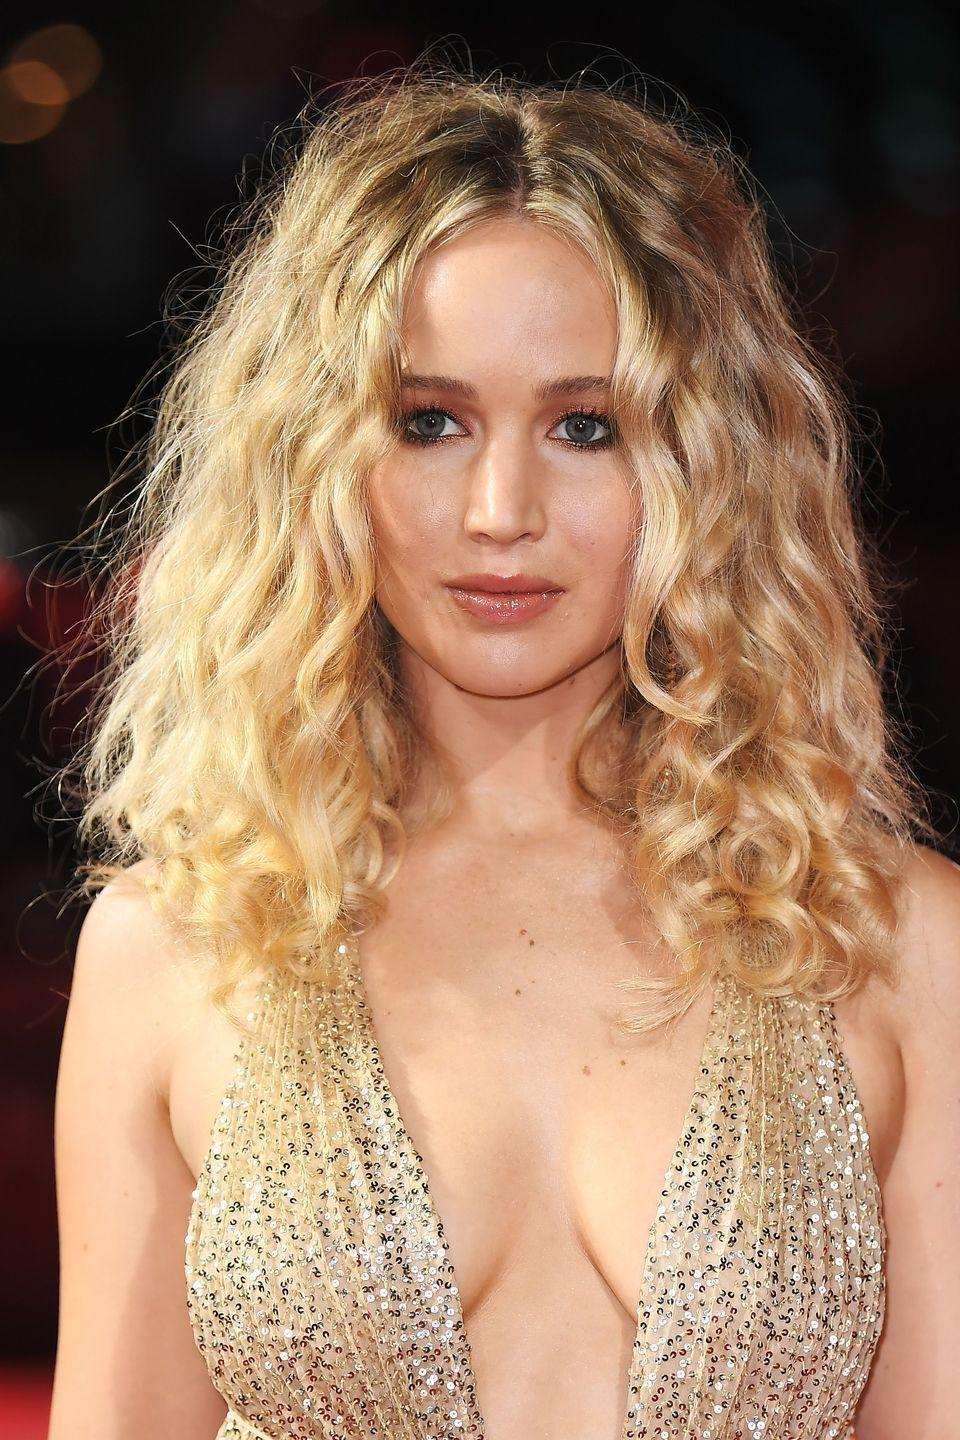 <p>When Jennifer Lawrence takes unruly curls rocking down the red carpet you know it's officially a thing. Mixing things up from her super sleek straight hair at the Baftas, J-Law went au naturel with a curly, tousled look for last night's Red Sparrow premiere.</p>